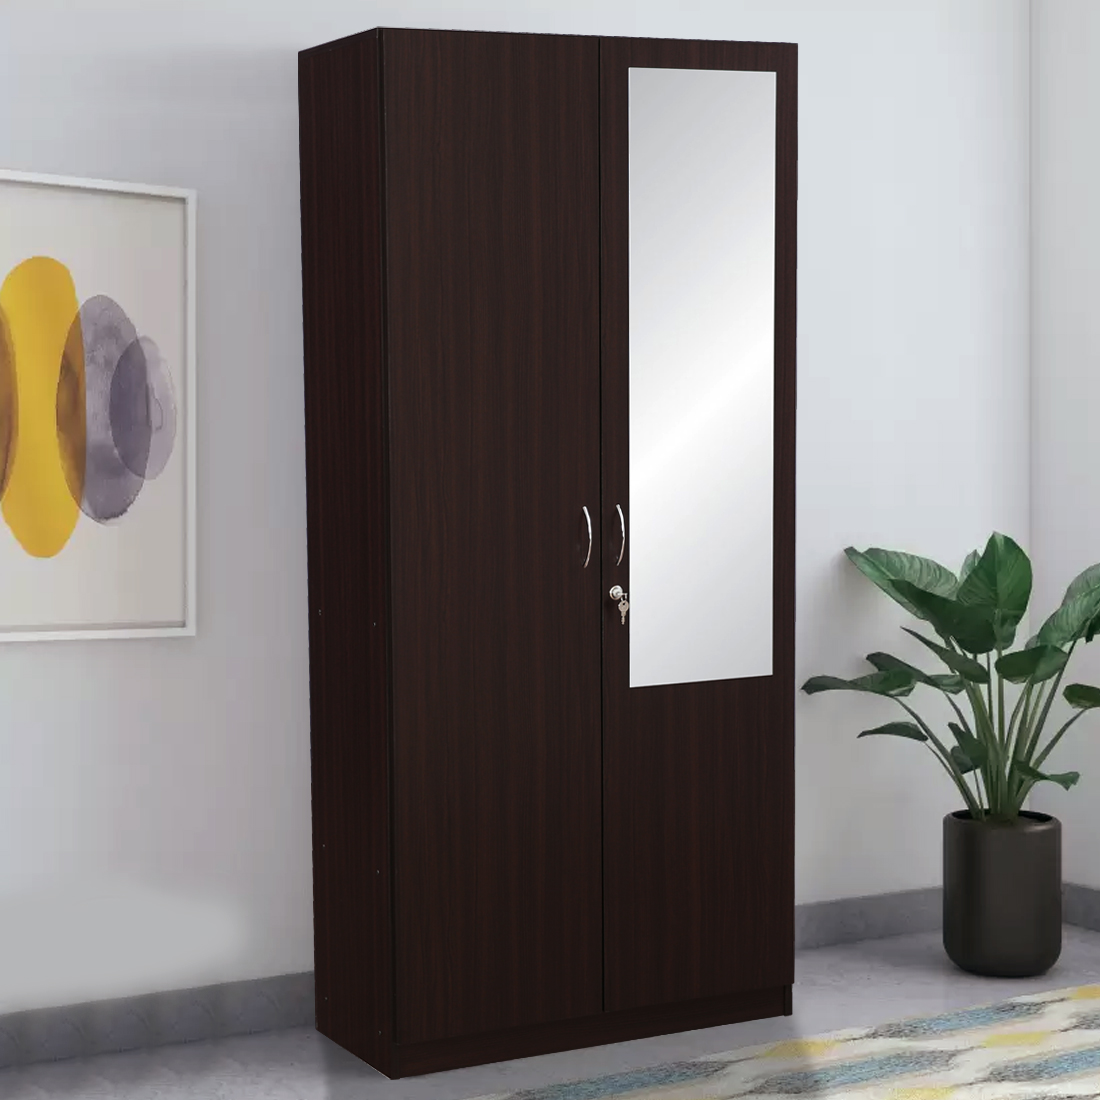 new product 4e521 d3198 Allen Engineered Wood Two Door Wardrobe in Walnut Colour by HomeTown